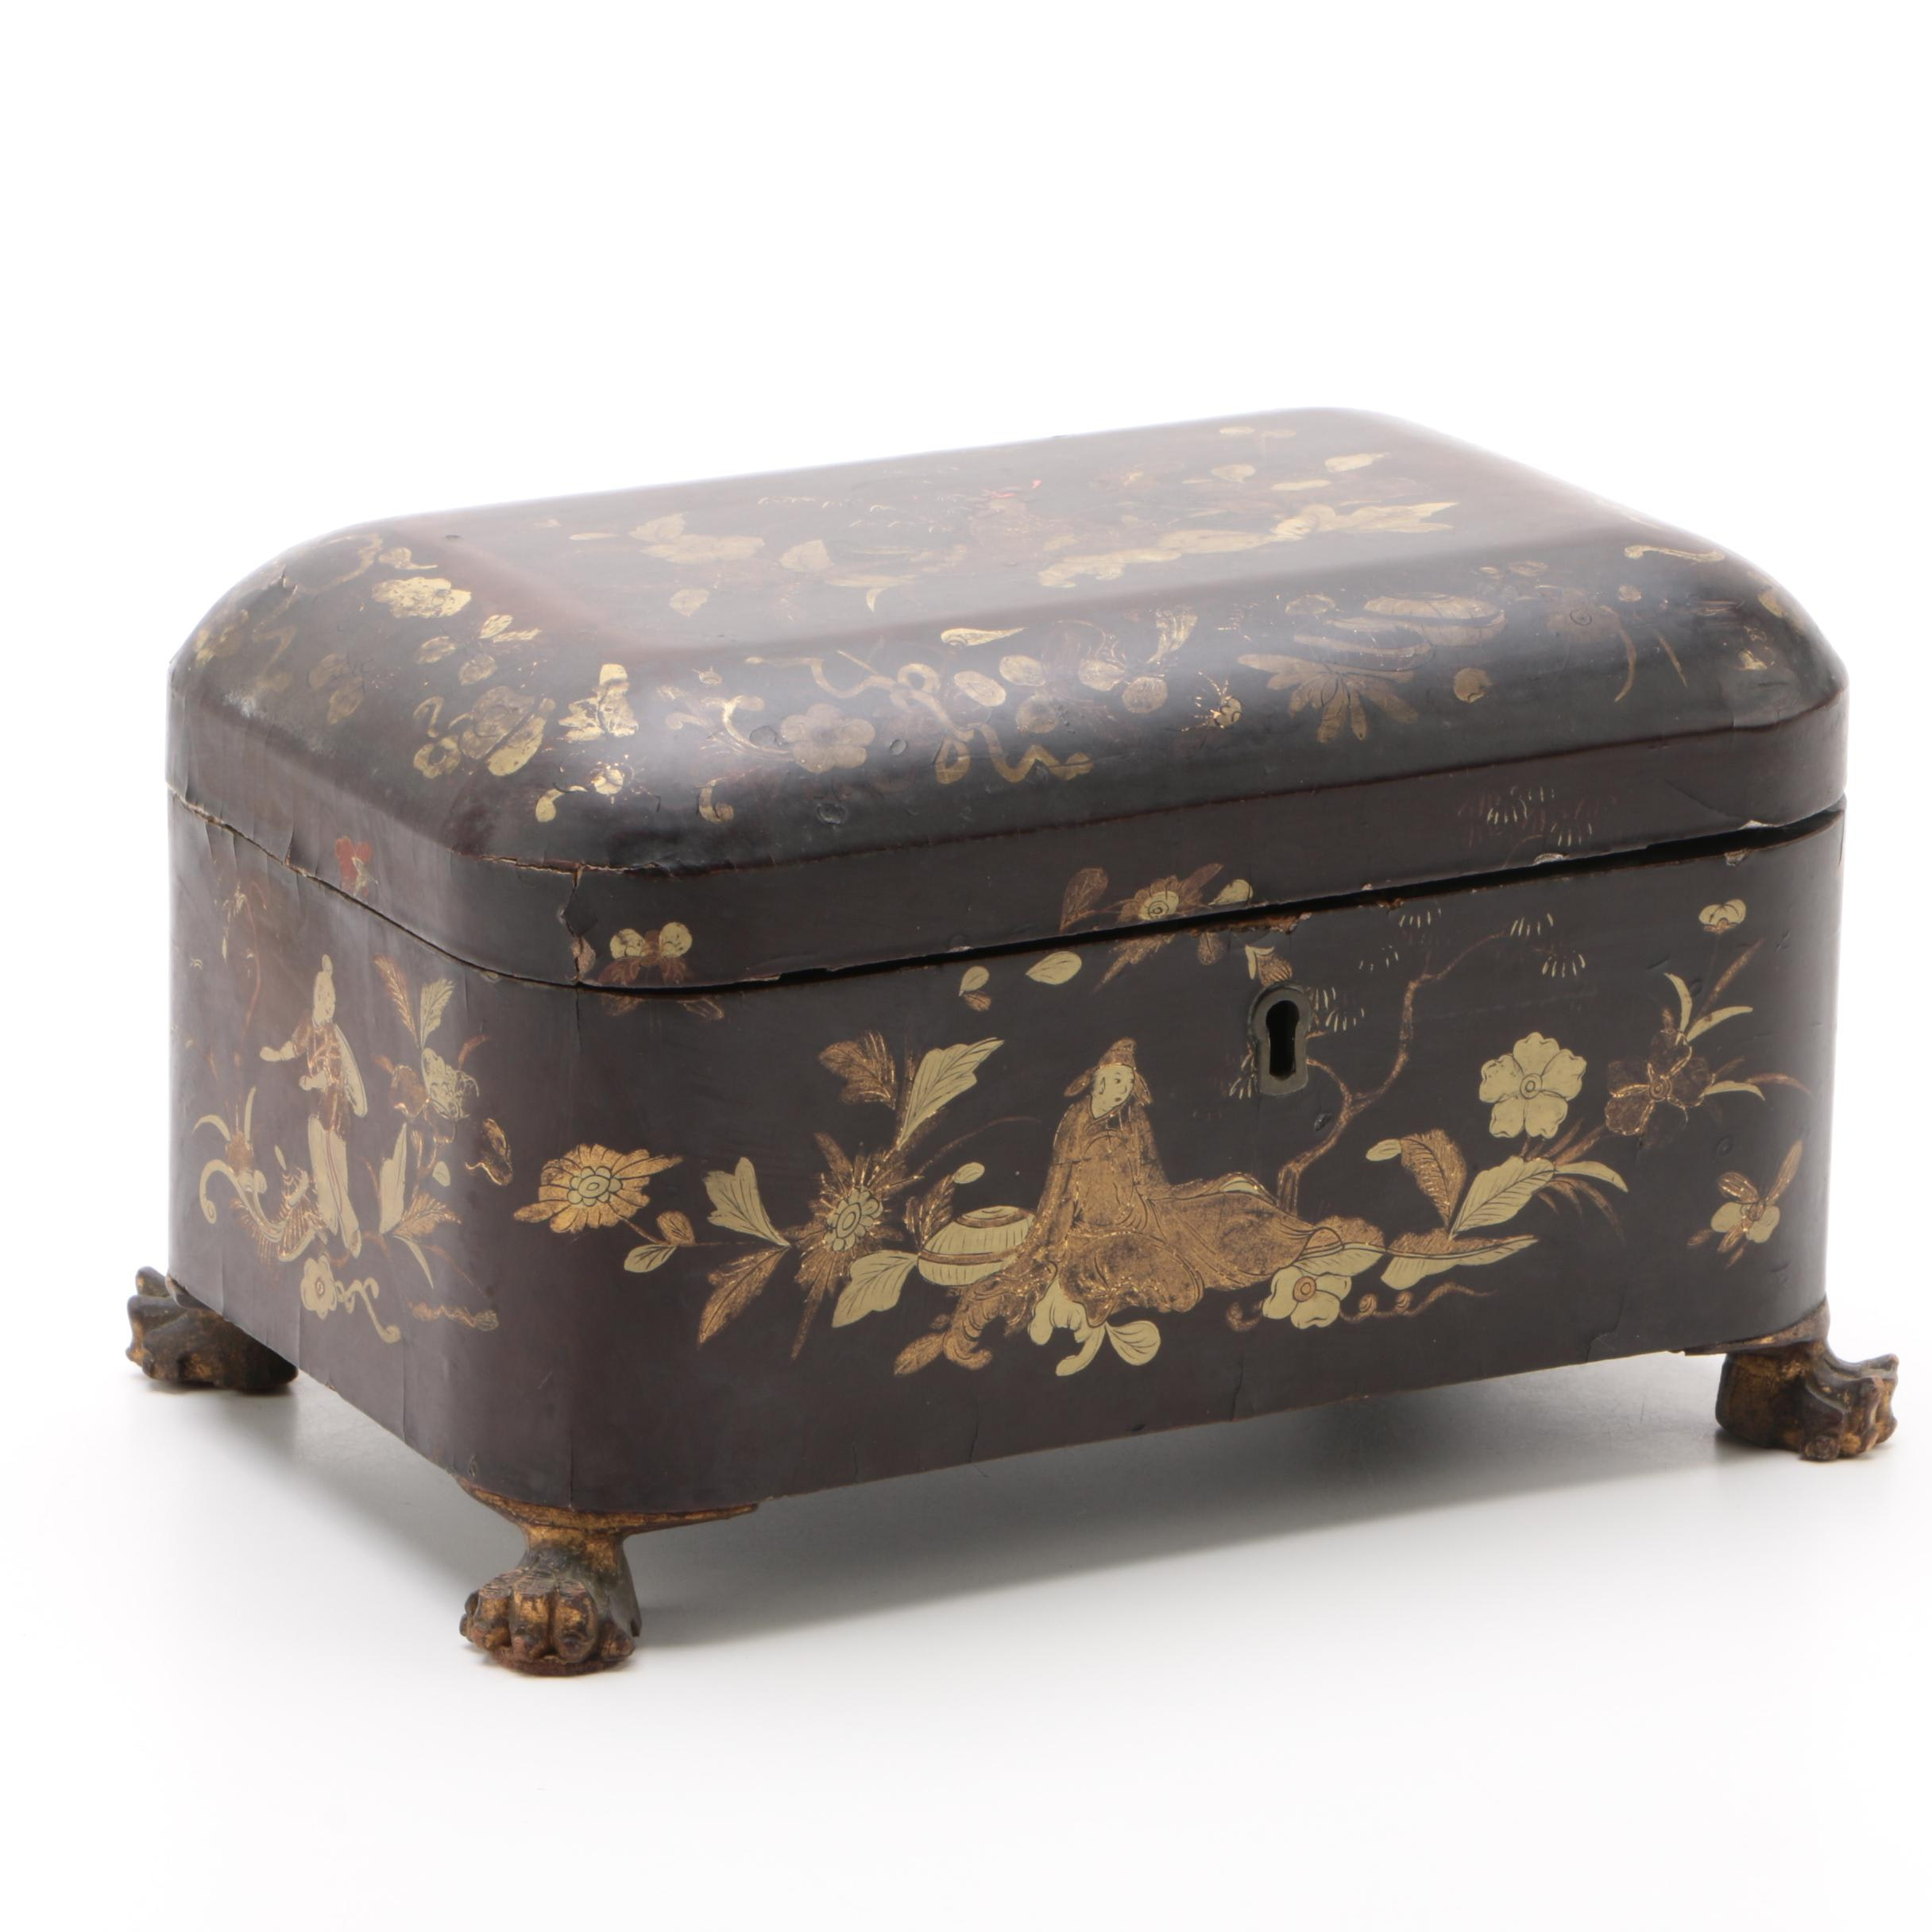 Chinese Lacquer Tea Caddy, Late 19th/Early 20th Century